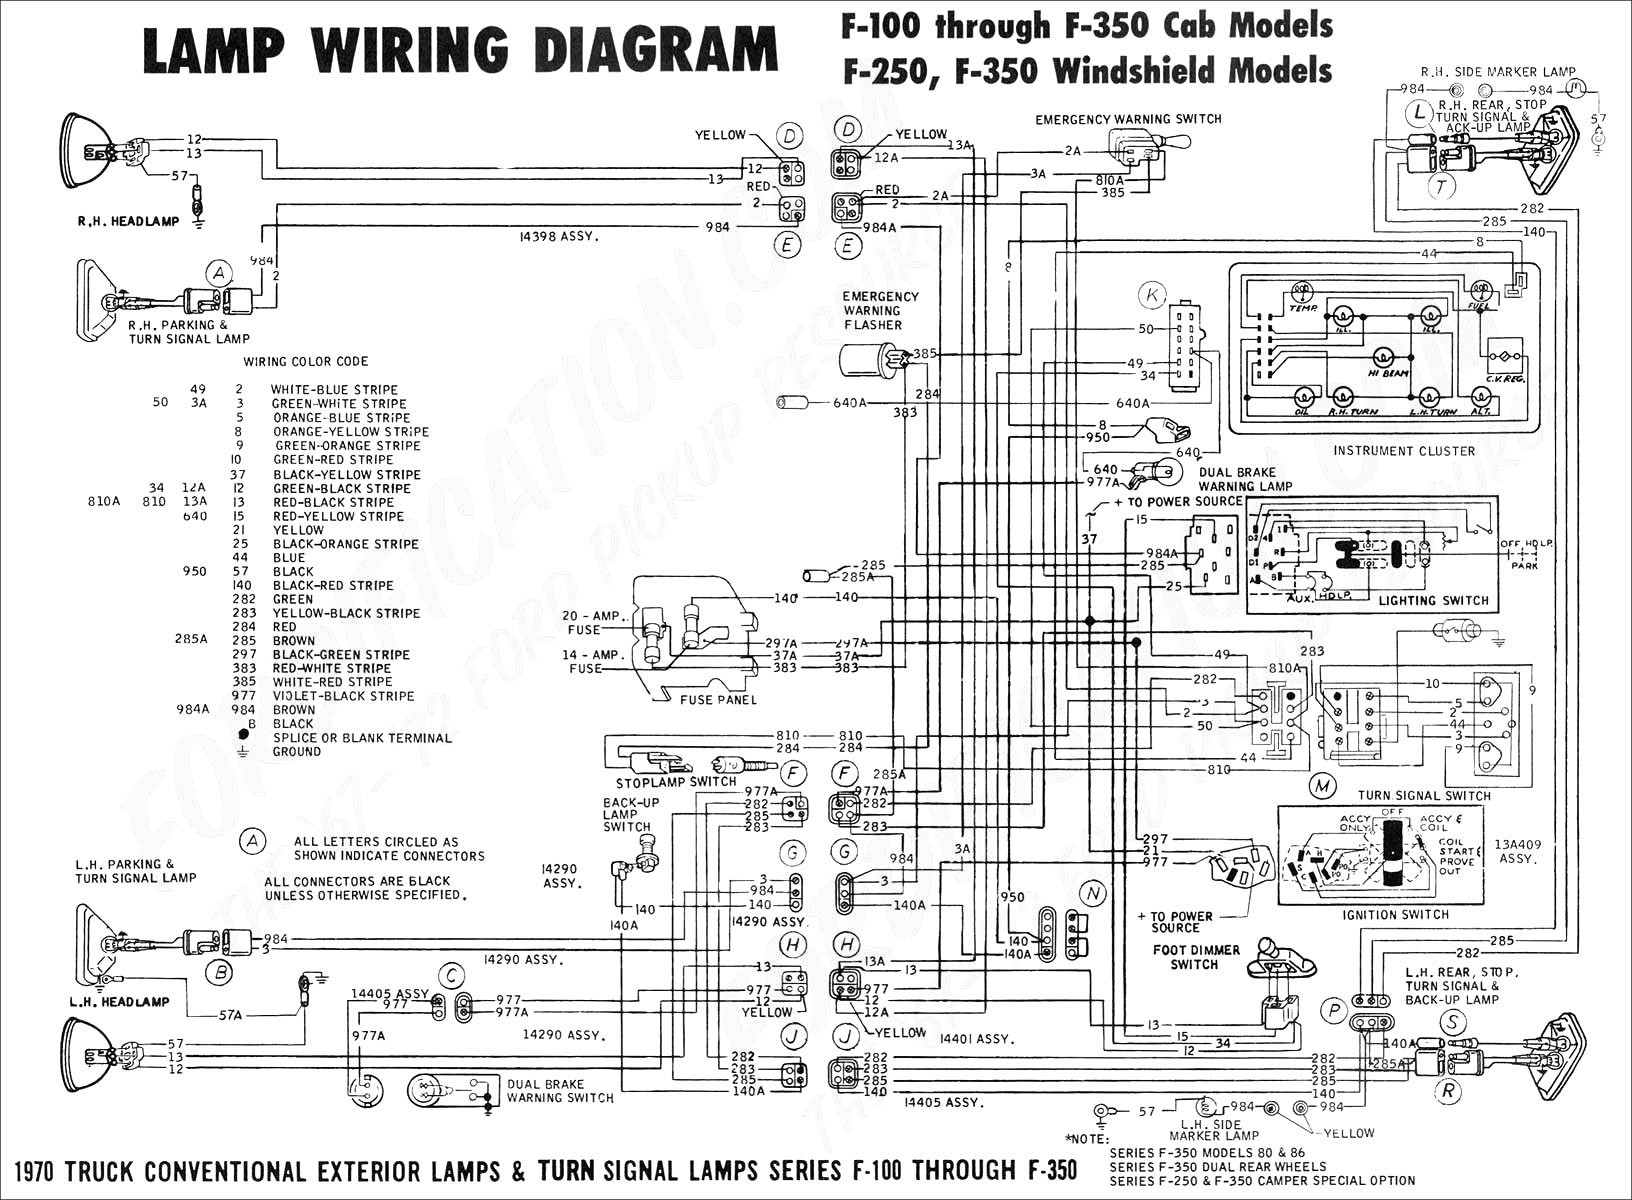 2011 F350 Upfitter Wire Diagram Inspirational